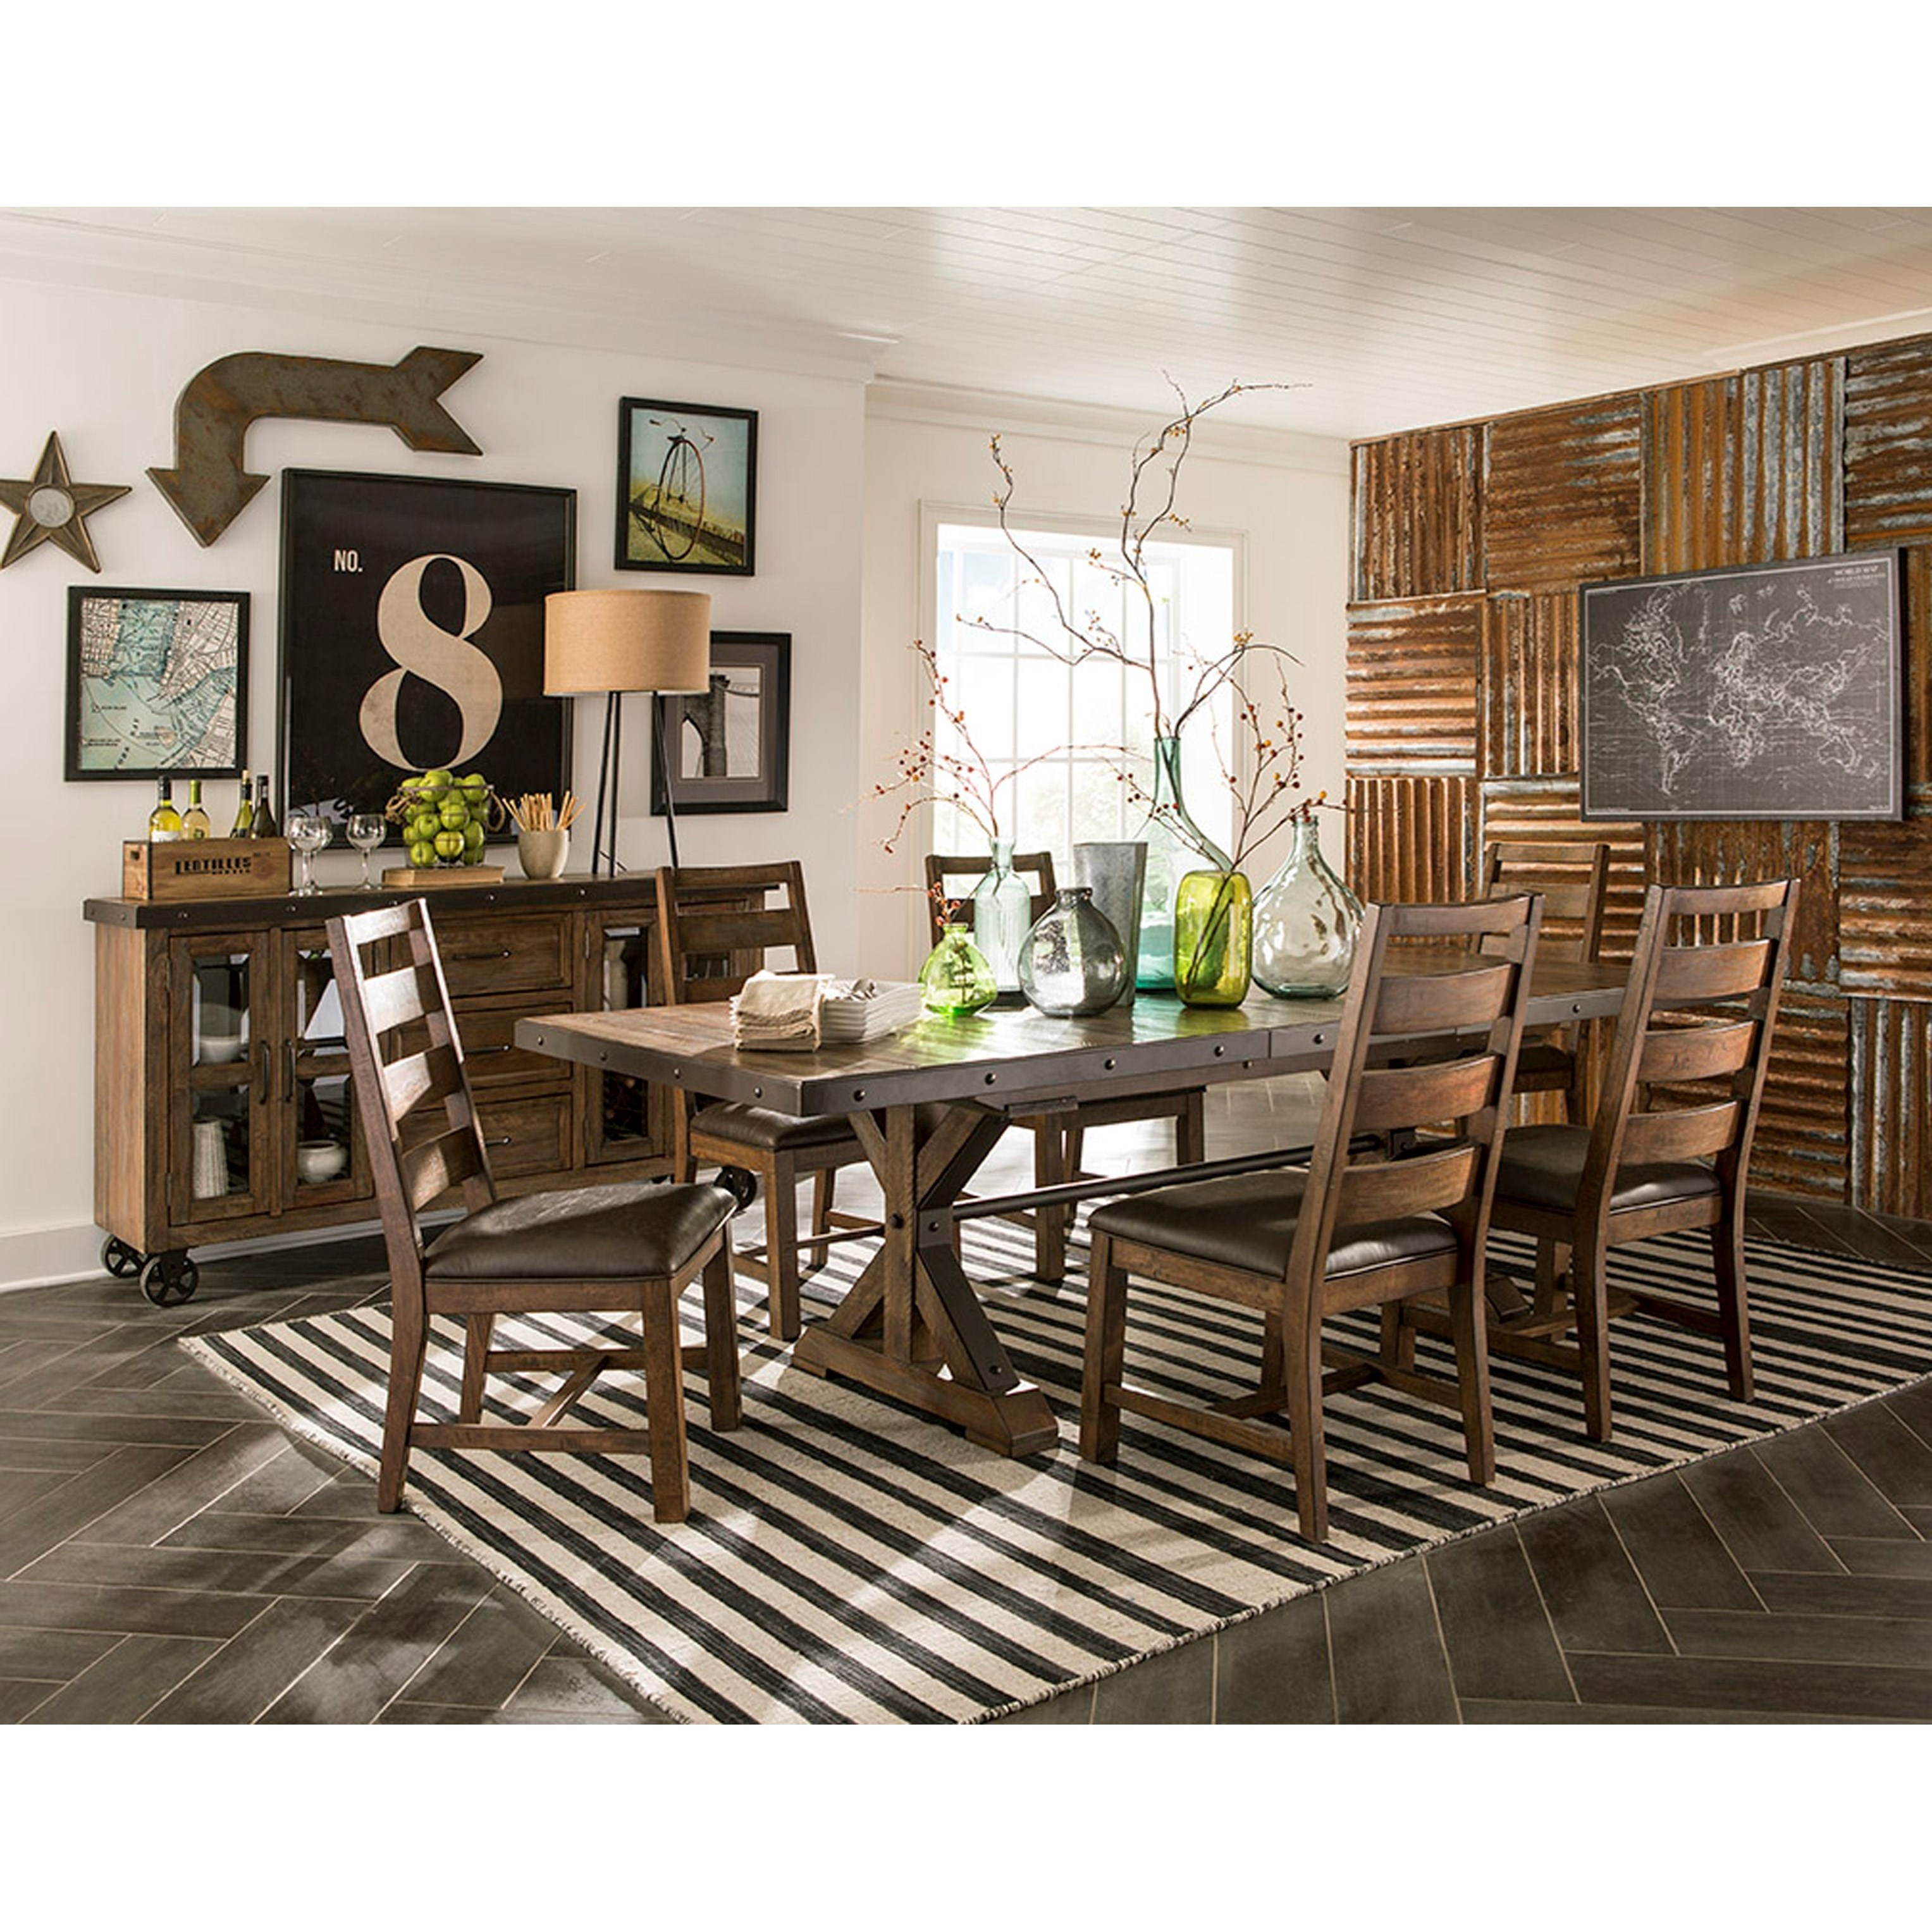 Taos Dining Room Group by VFM Signature at Virginia Furniture Market